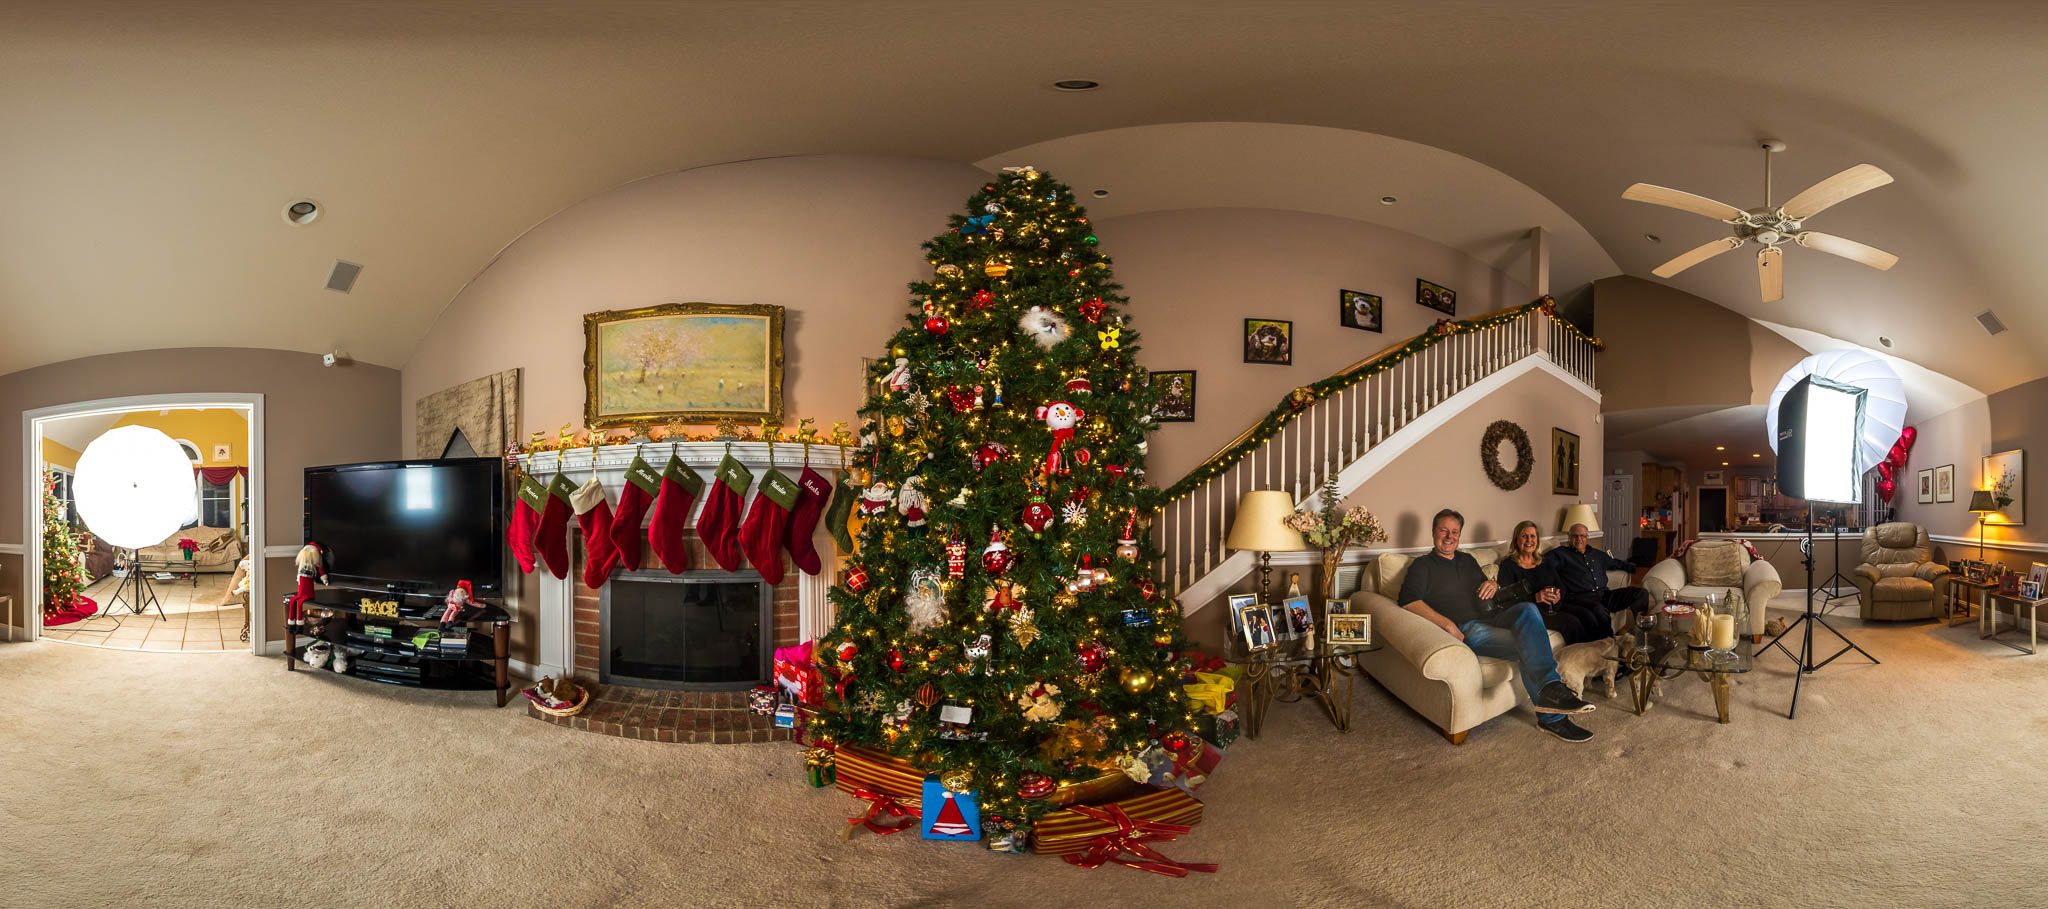 Click on image to see full 360 panorama